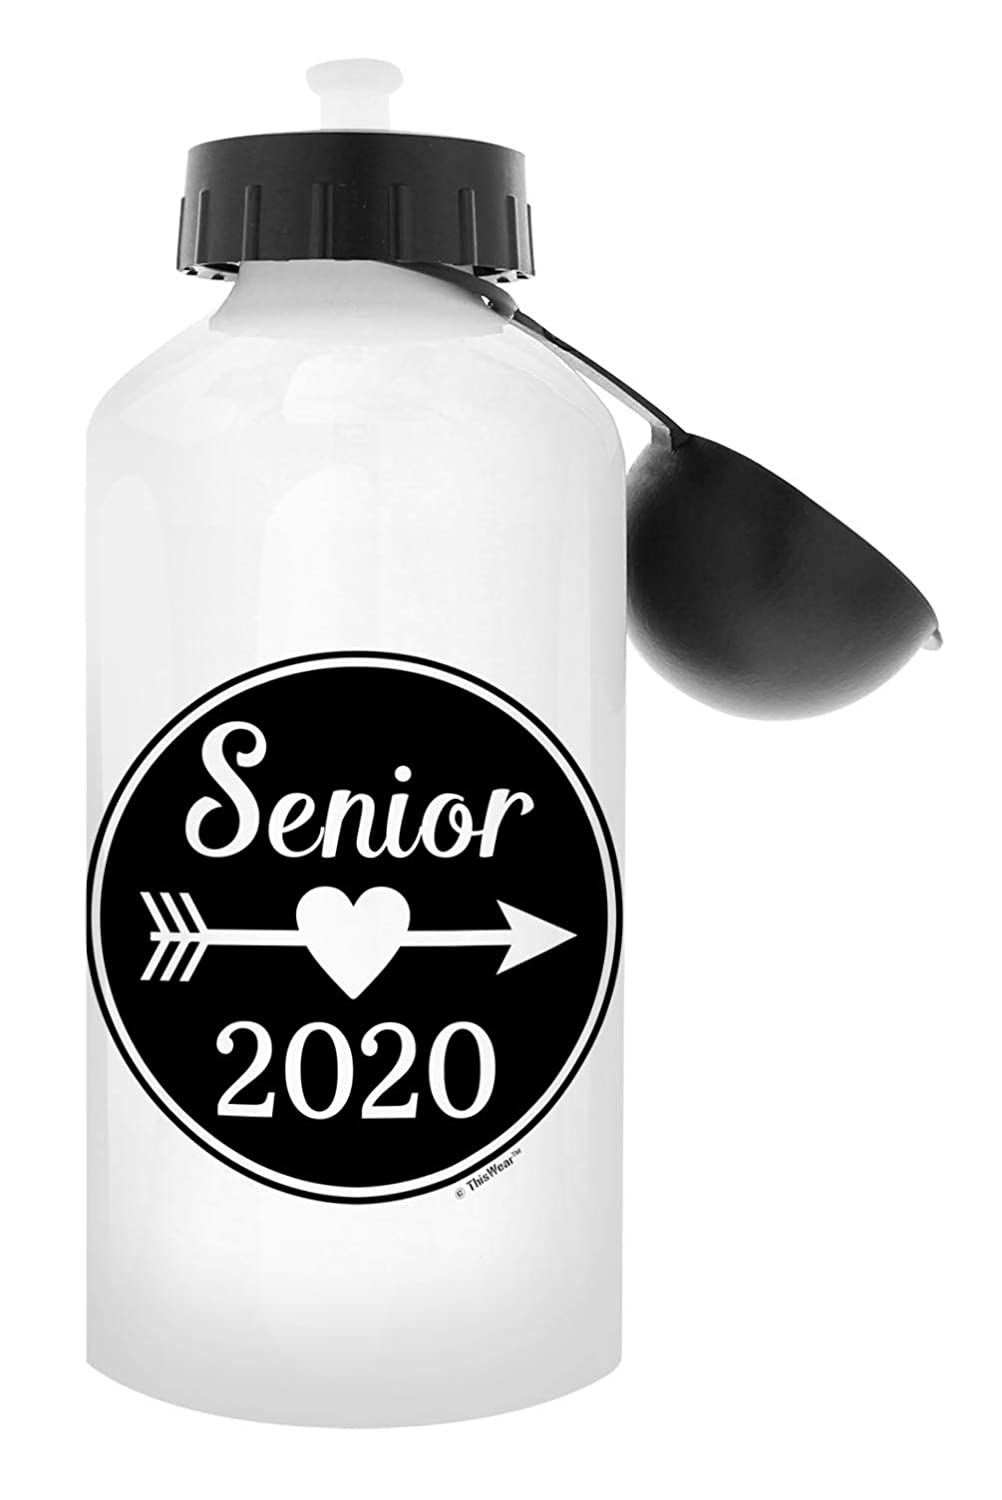 Best Gifts For College Students 2020.Thiswear Graduation Gifts Class Of 2020 Senior 2020 Heart Seniors Graduation Gifts For Women Graduation Party Gift 20 Oz Aluminum Water Bottle With